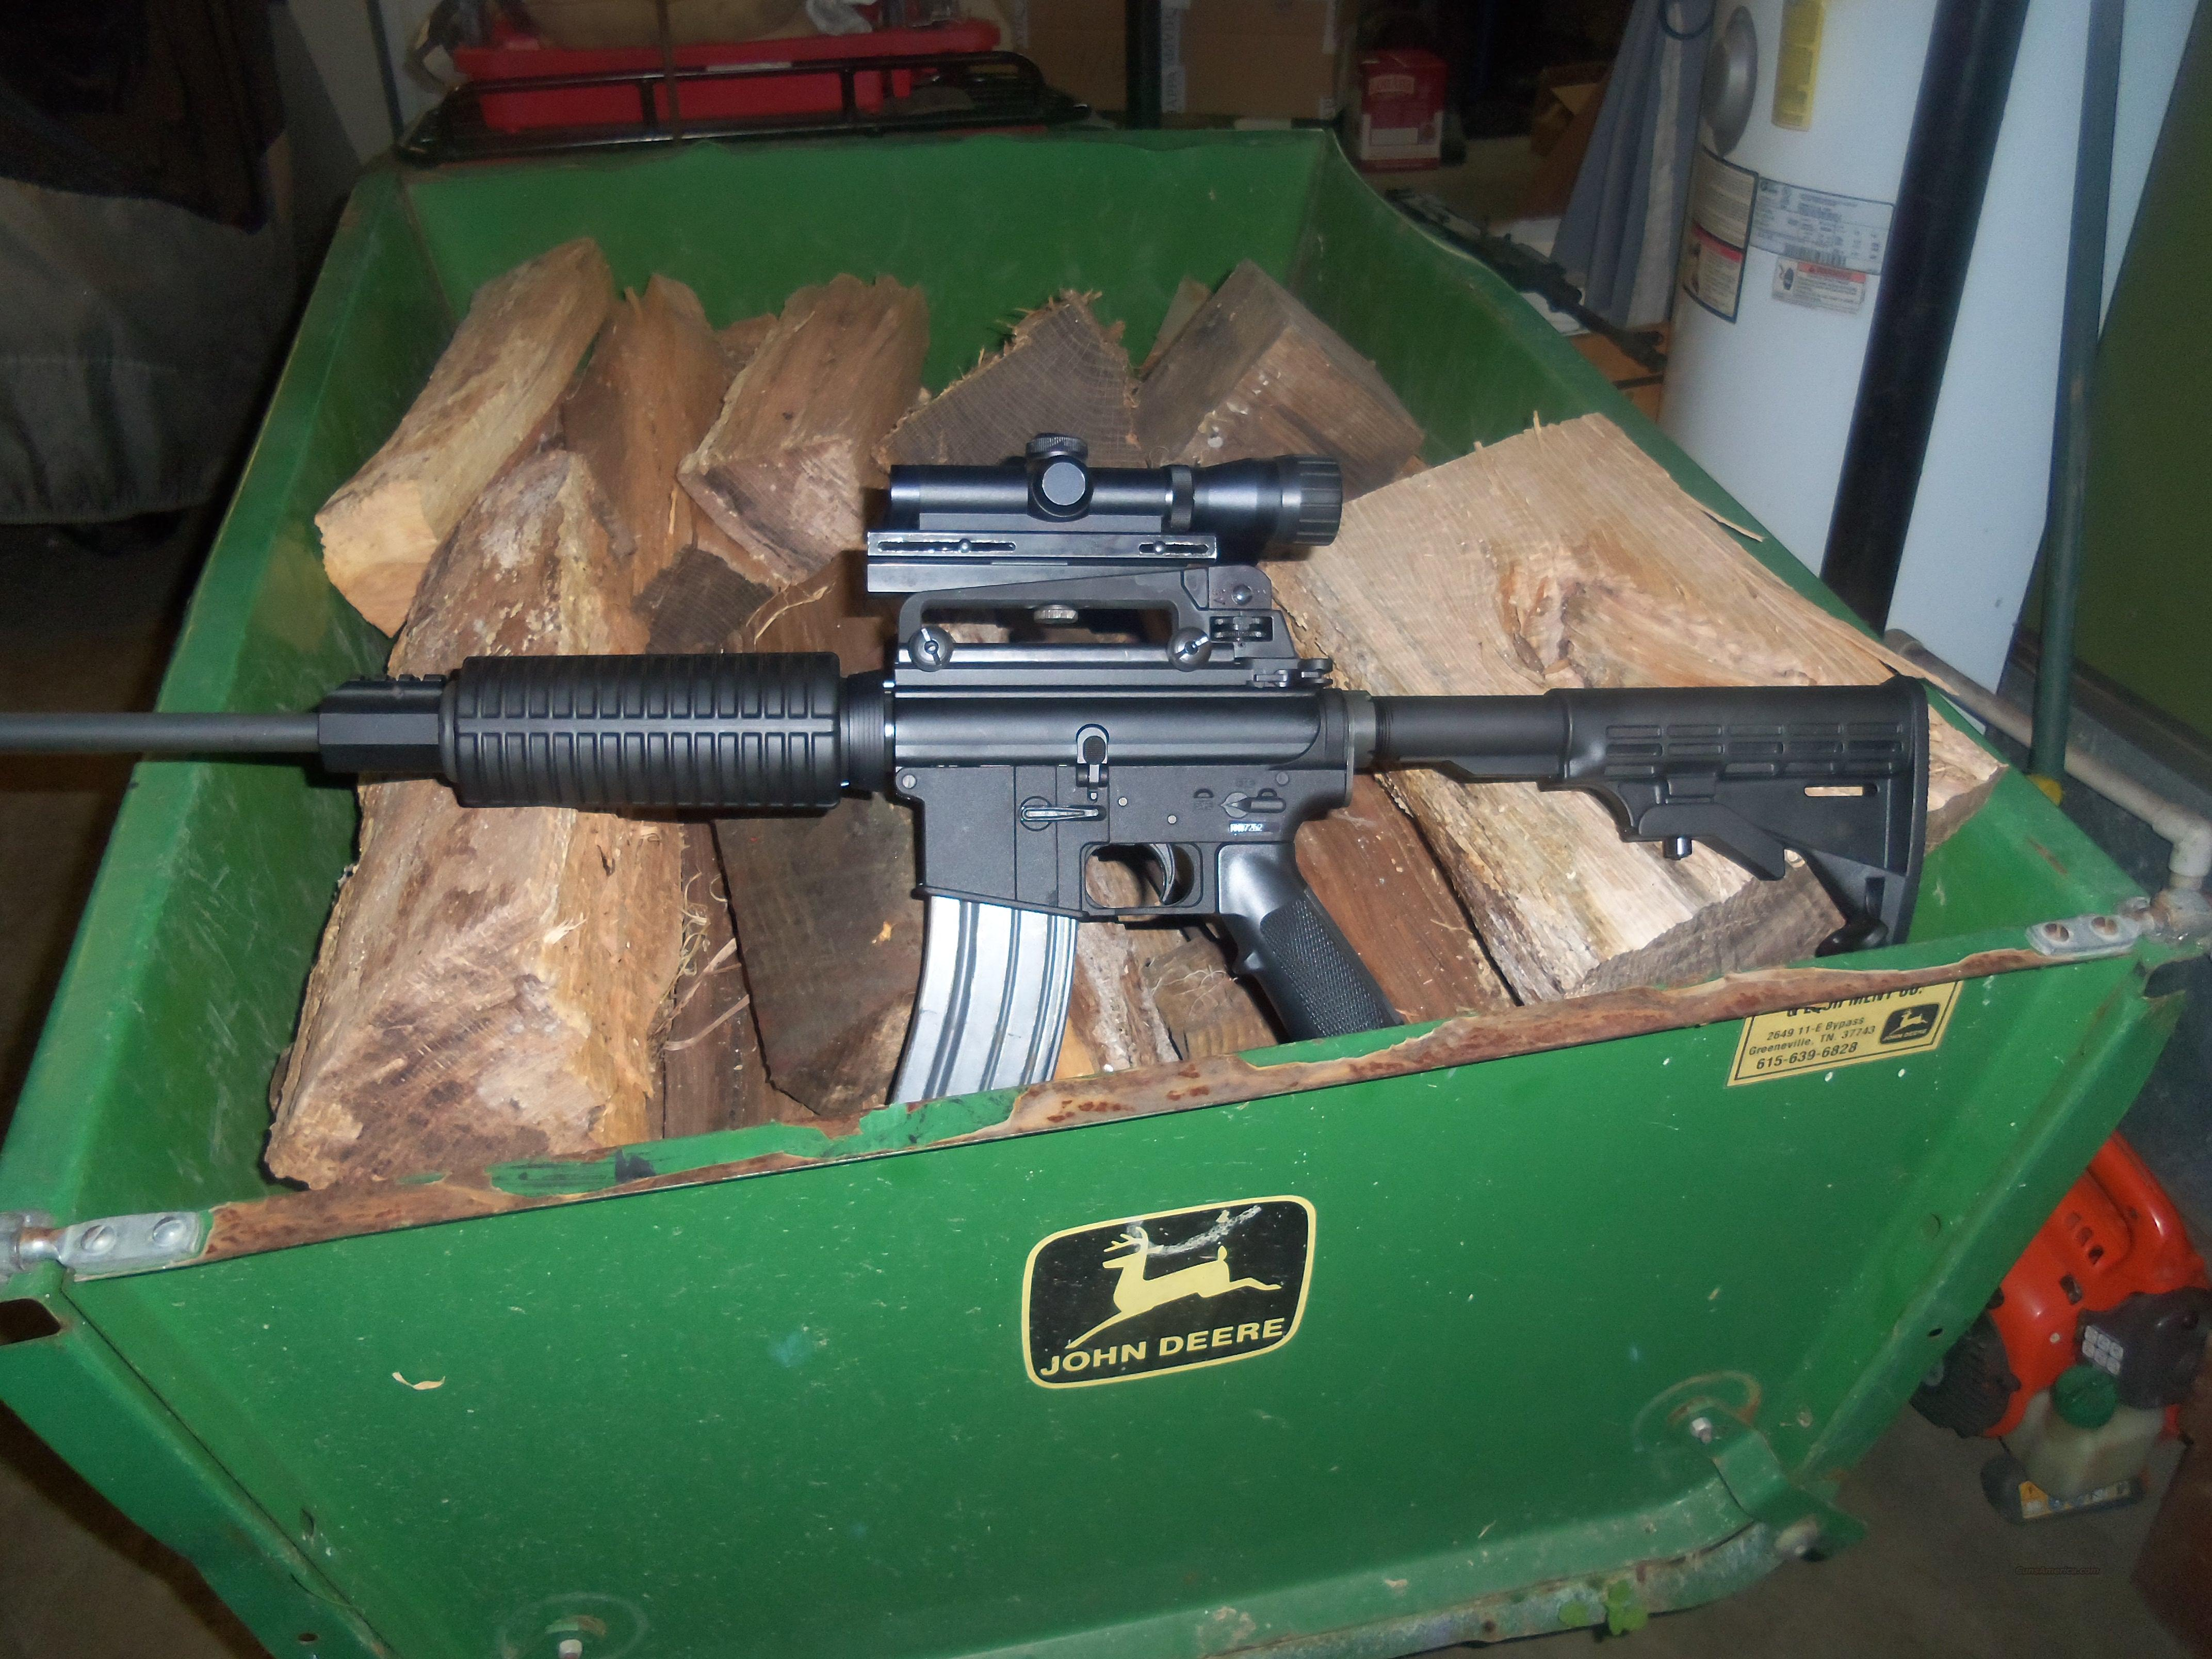 Ar155.56 with carry handle and scope  Guns > Rifles > AR-15 Rifles - Small Manufacturers > Complete Rifle